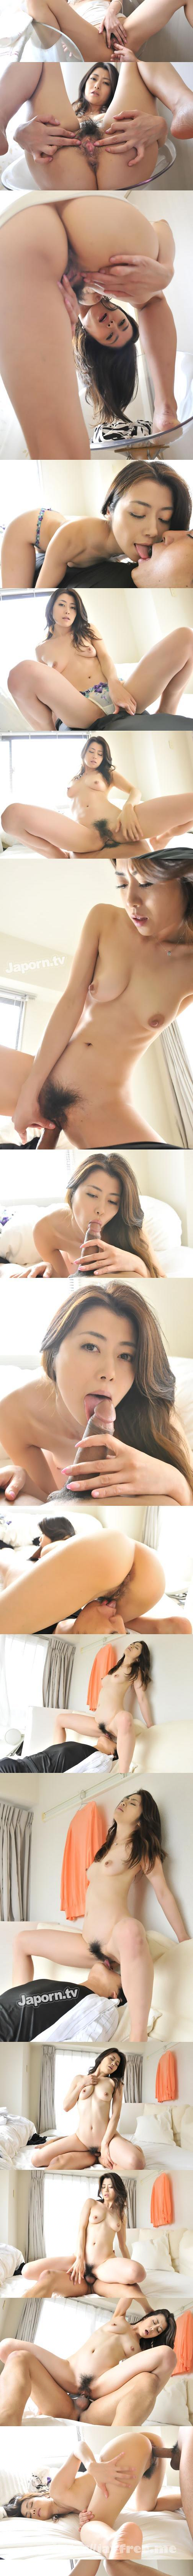 [BT-90] 美熟女優のP-SEX : 北条麻妃 - image BT-90_2 on https://javfree.me